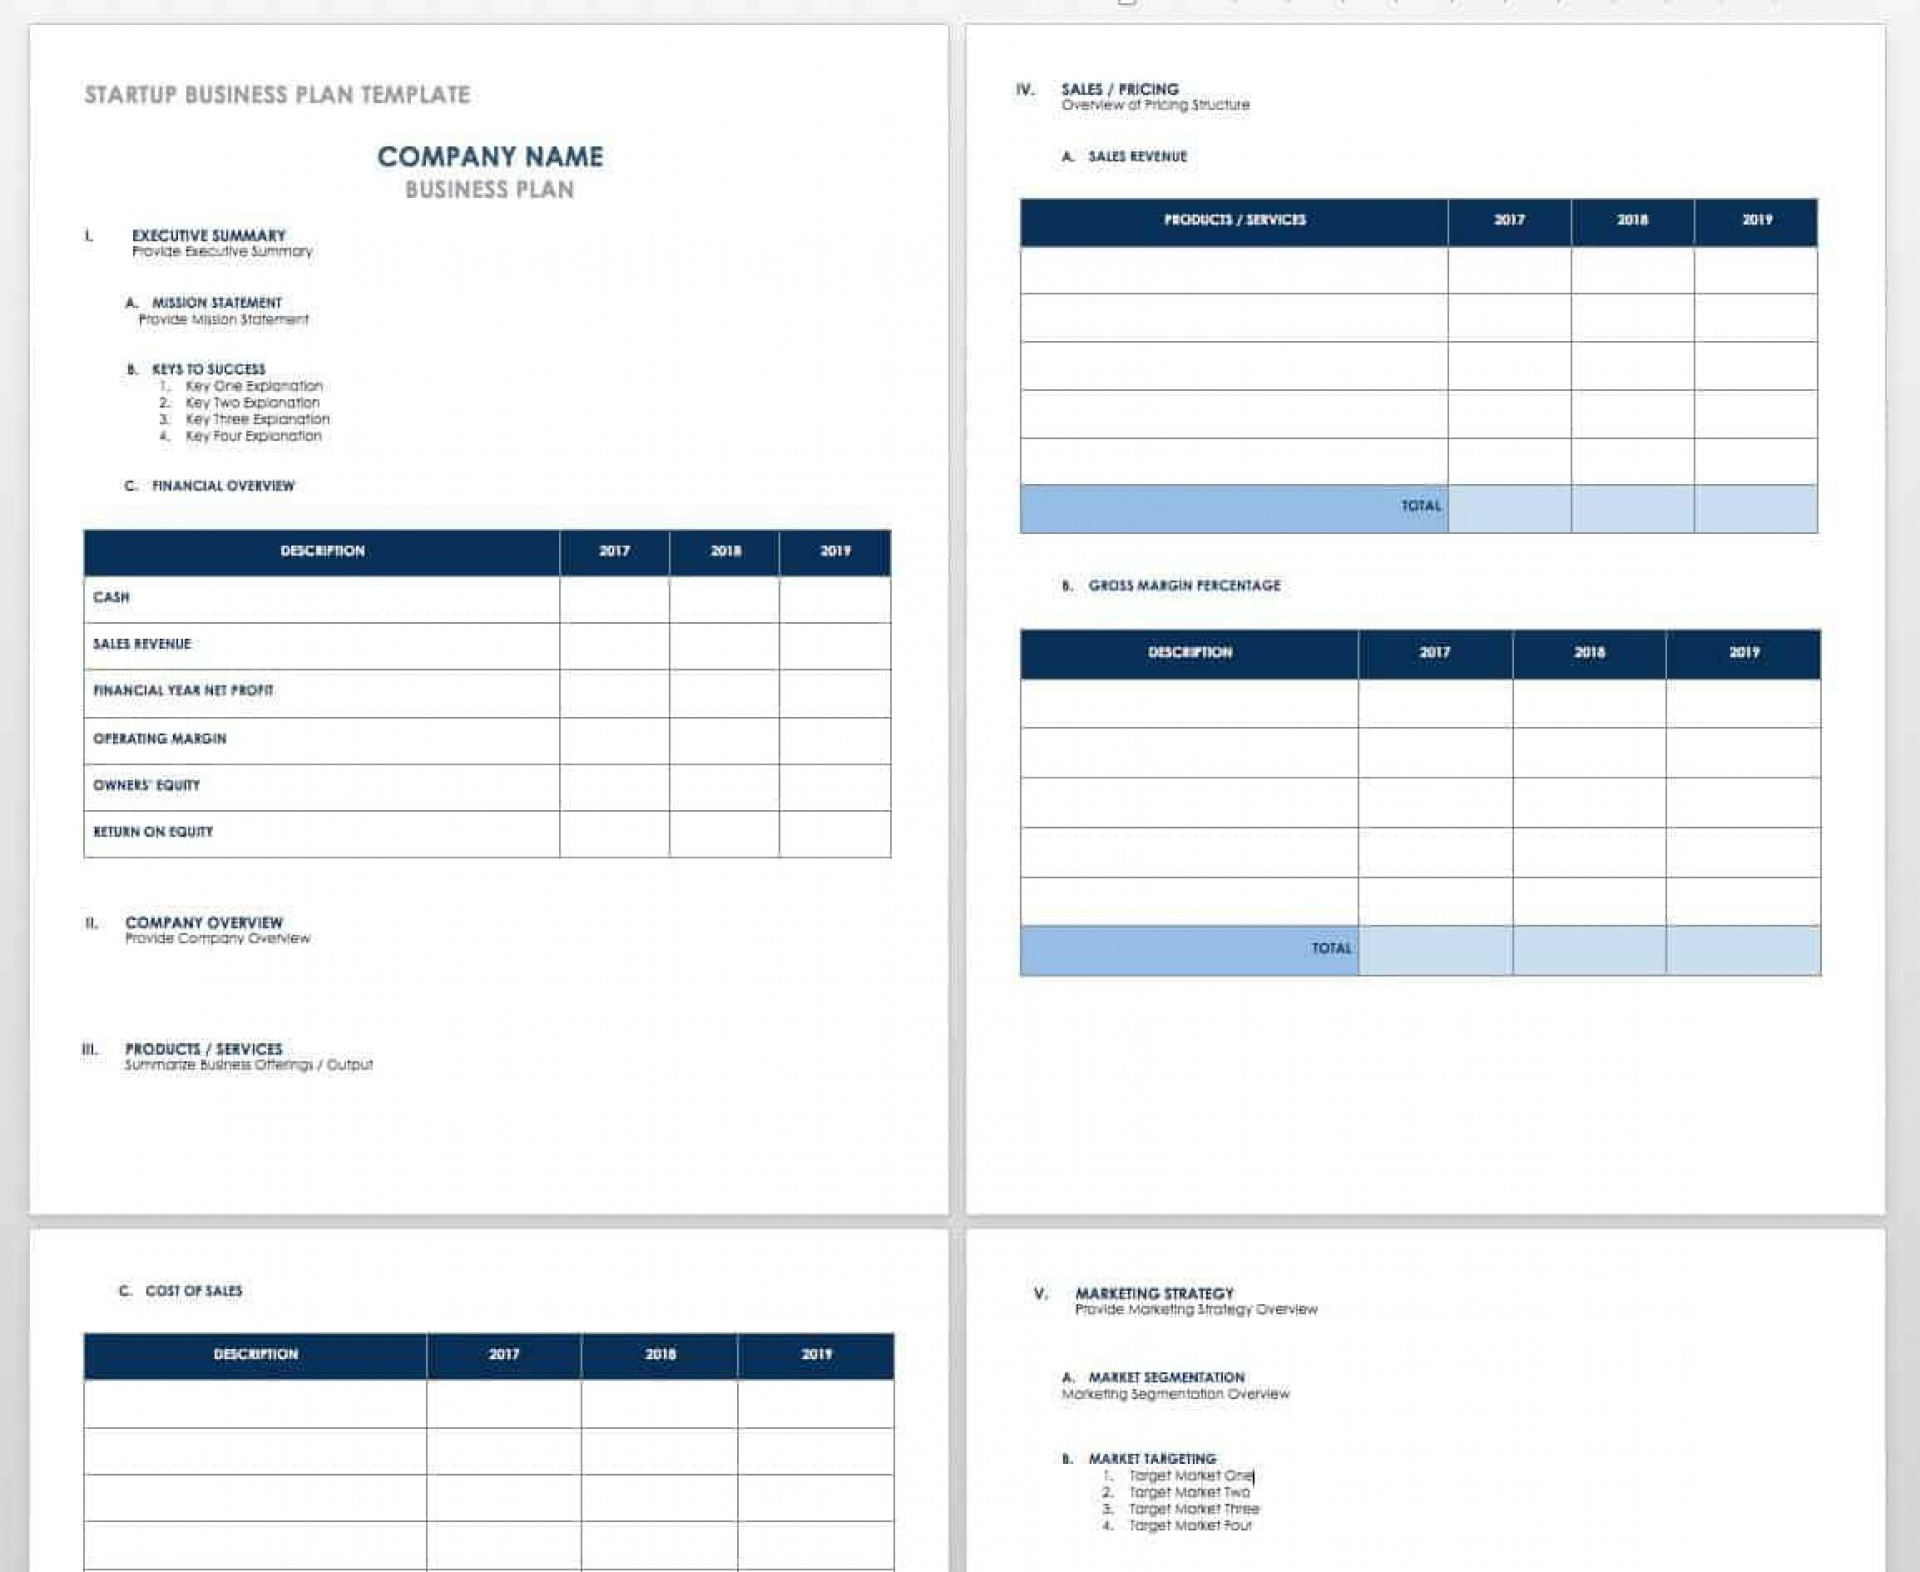 007 Exceptional Startup Busines Plan Template Picture  Free Download Doc1920